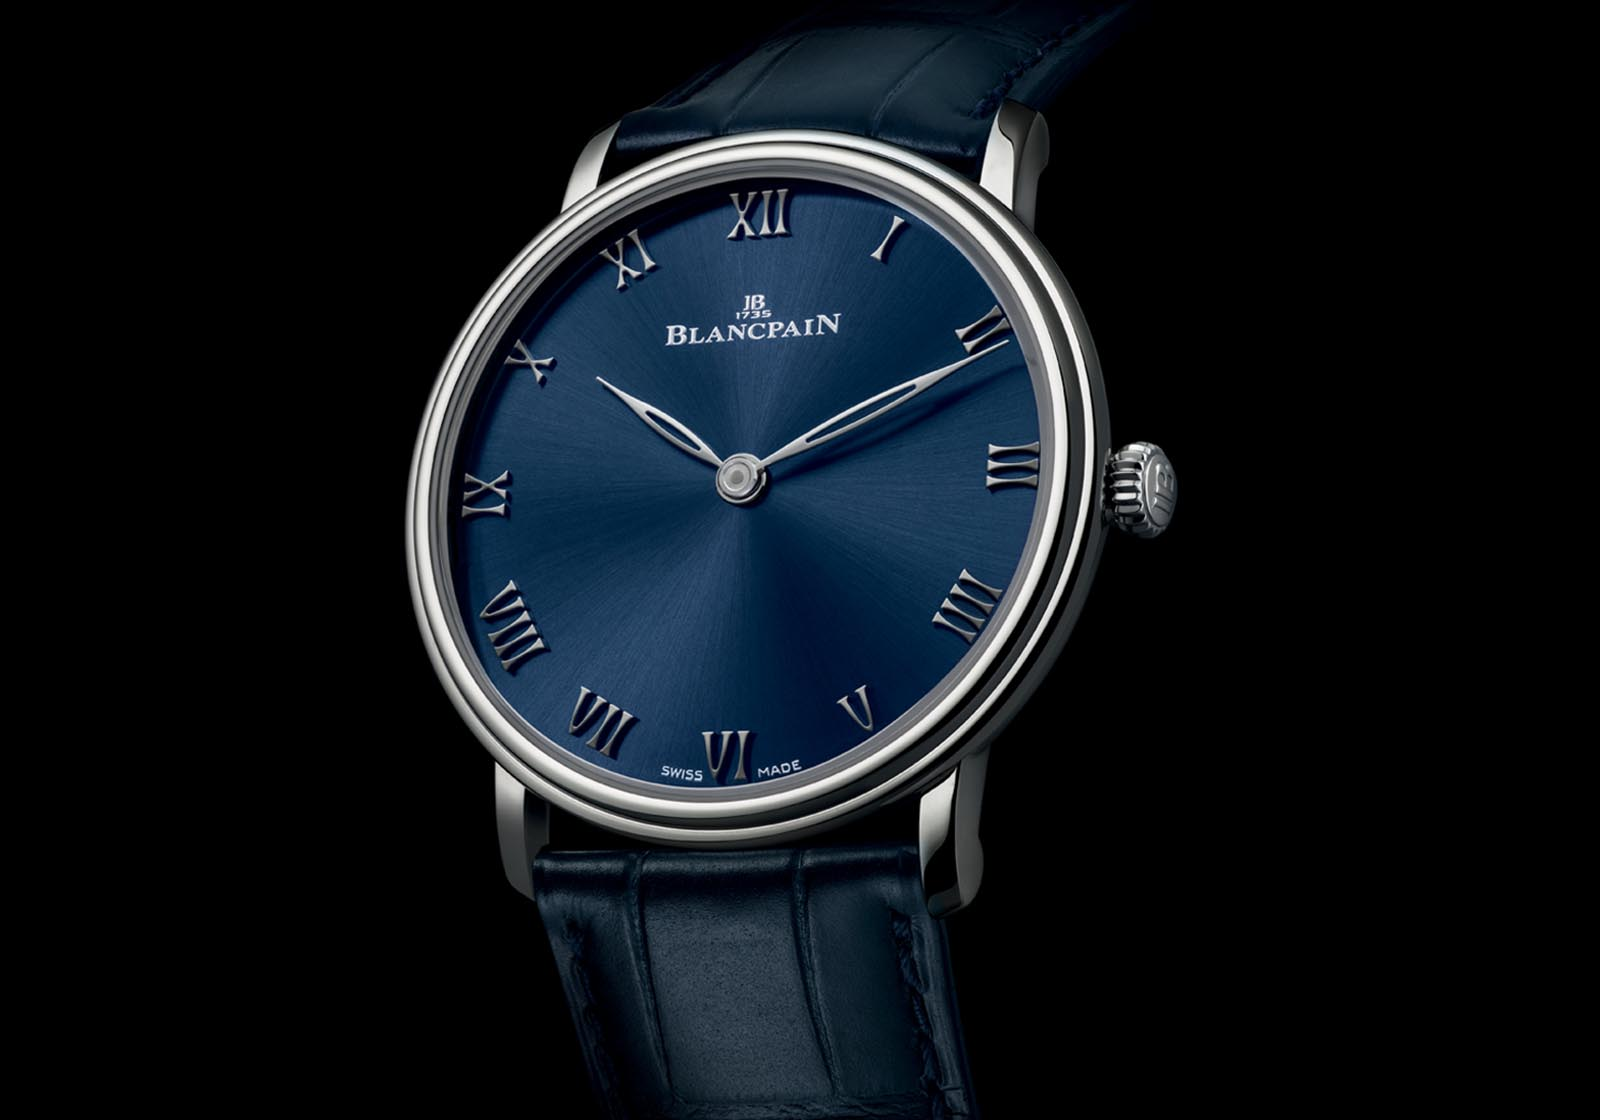 Blancpain Introduces the Villeret Ultraplate in Platinum